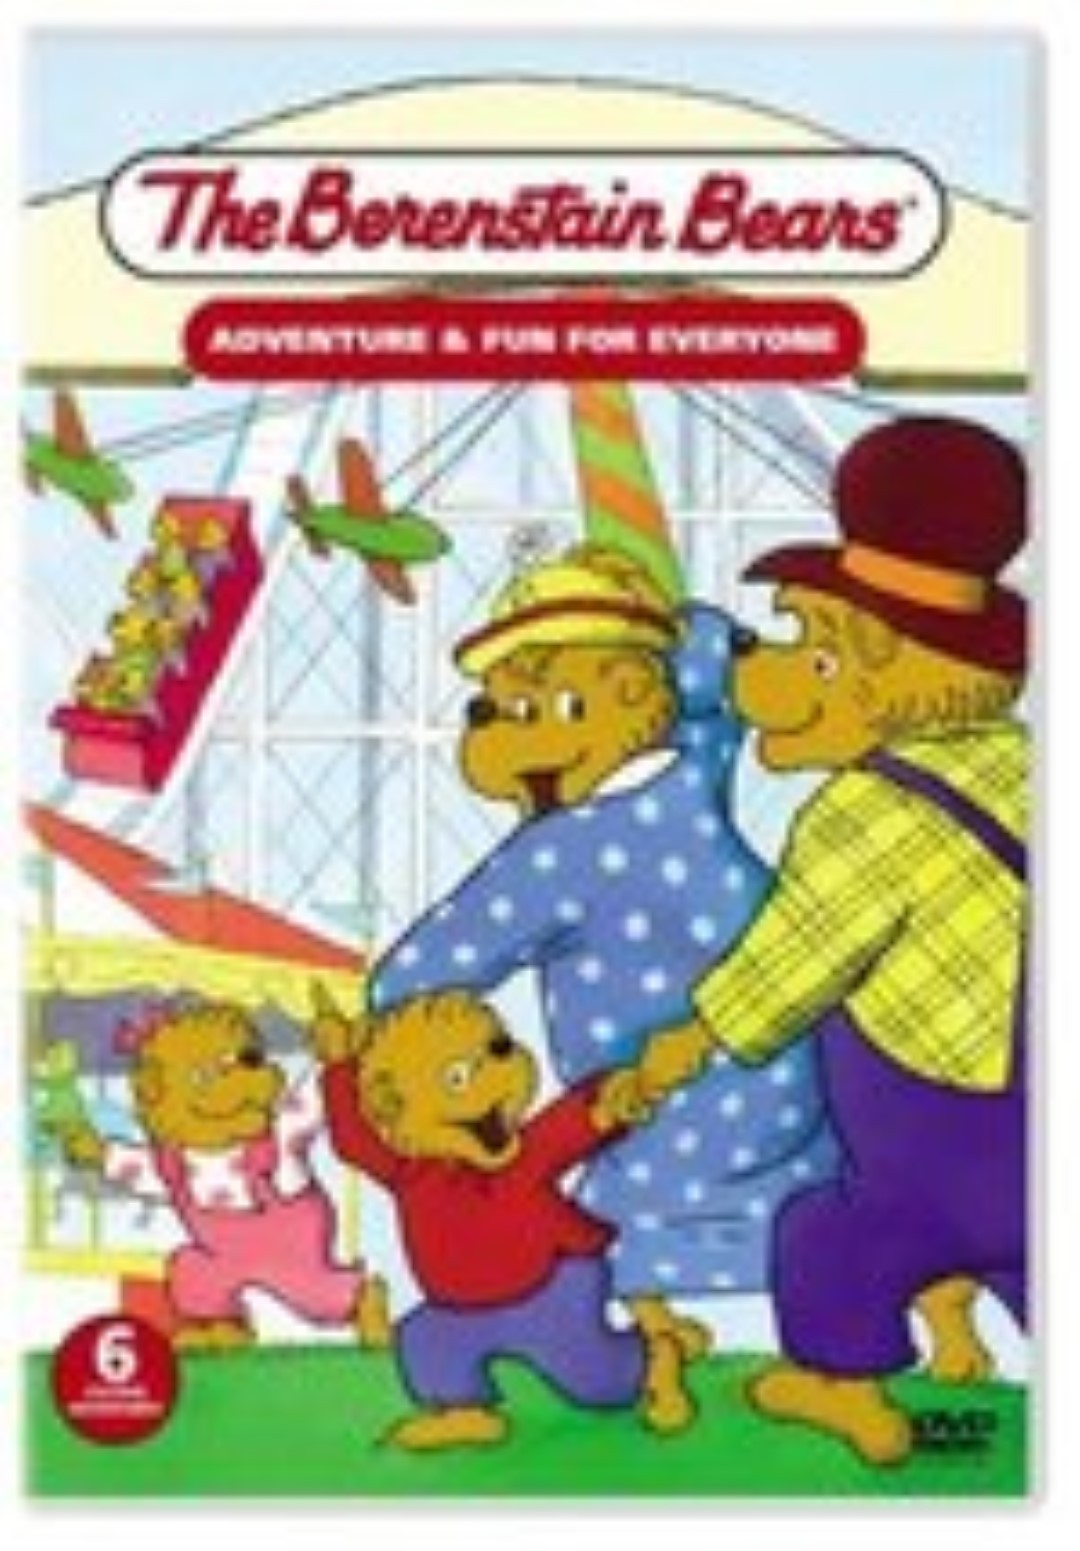 The Berenstain Bears - Adventure & Fun for Everyone Vhs